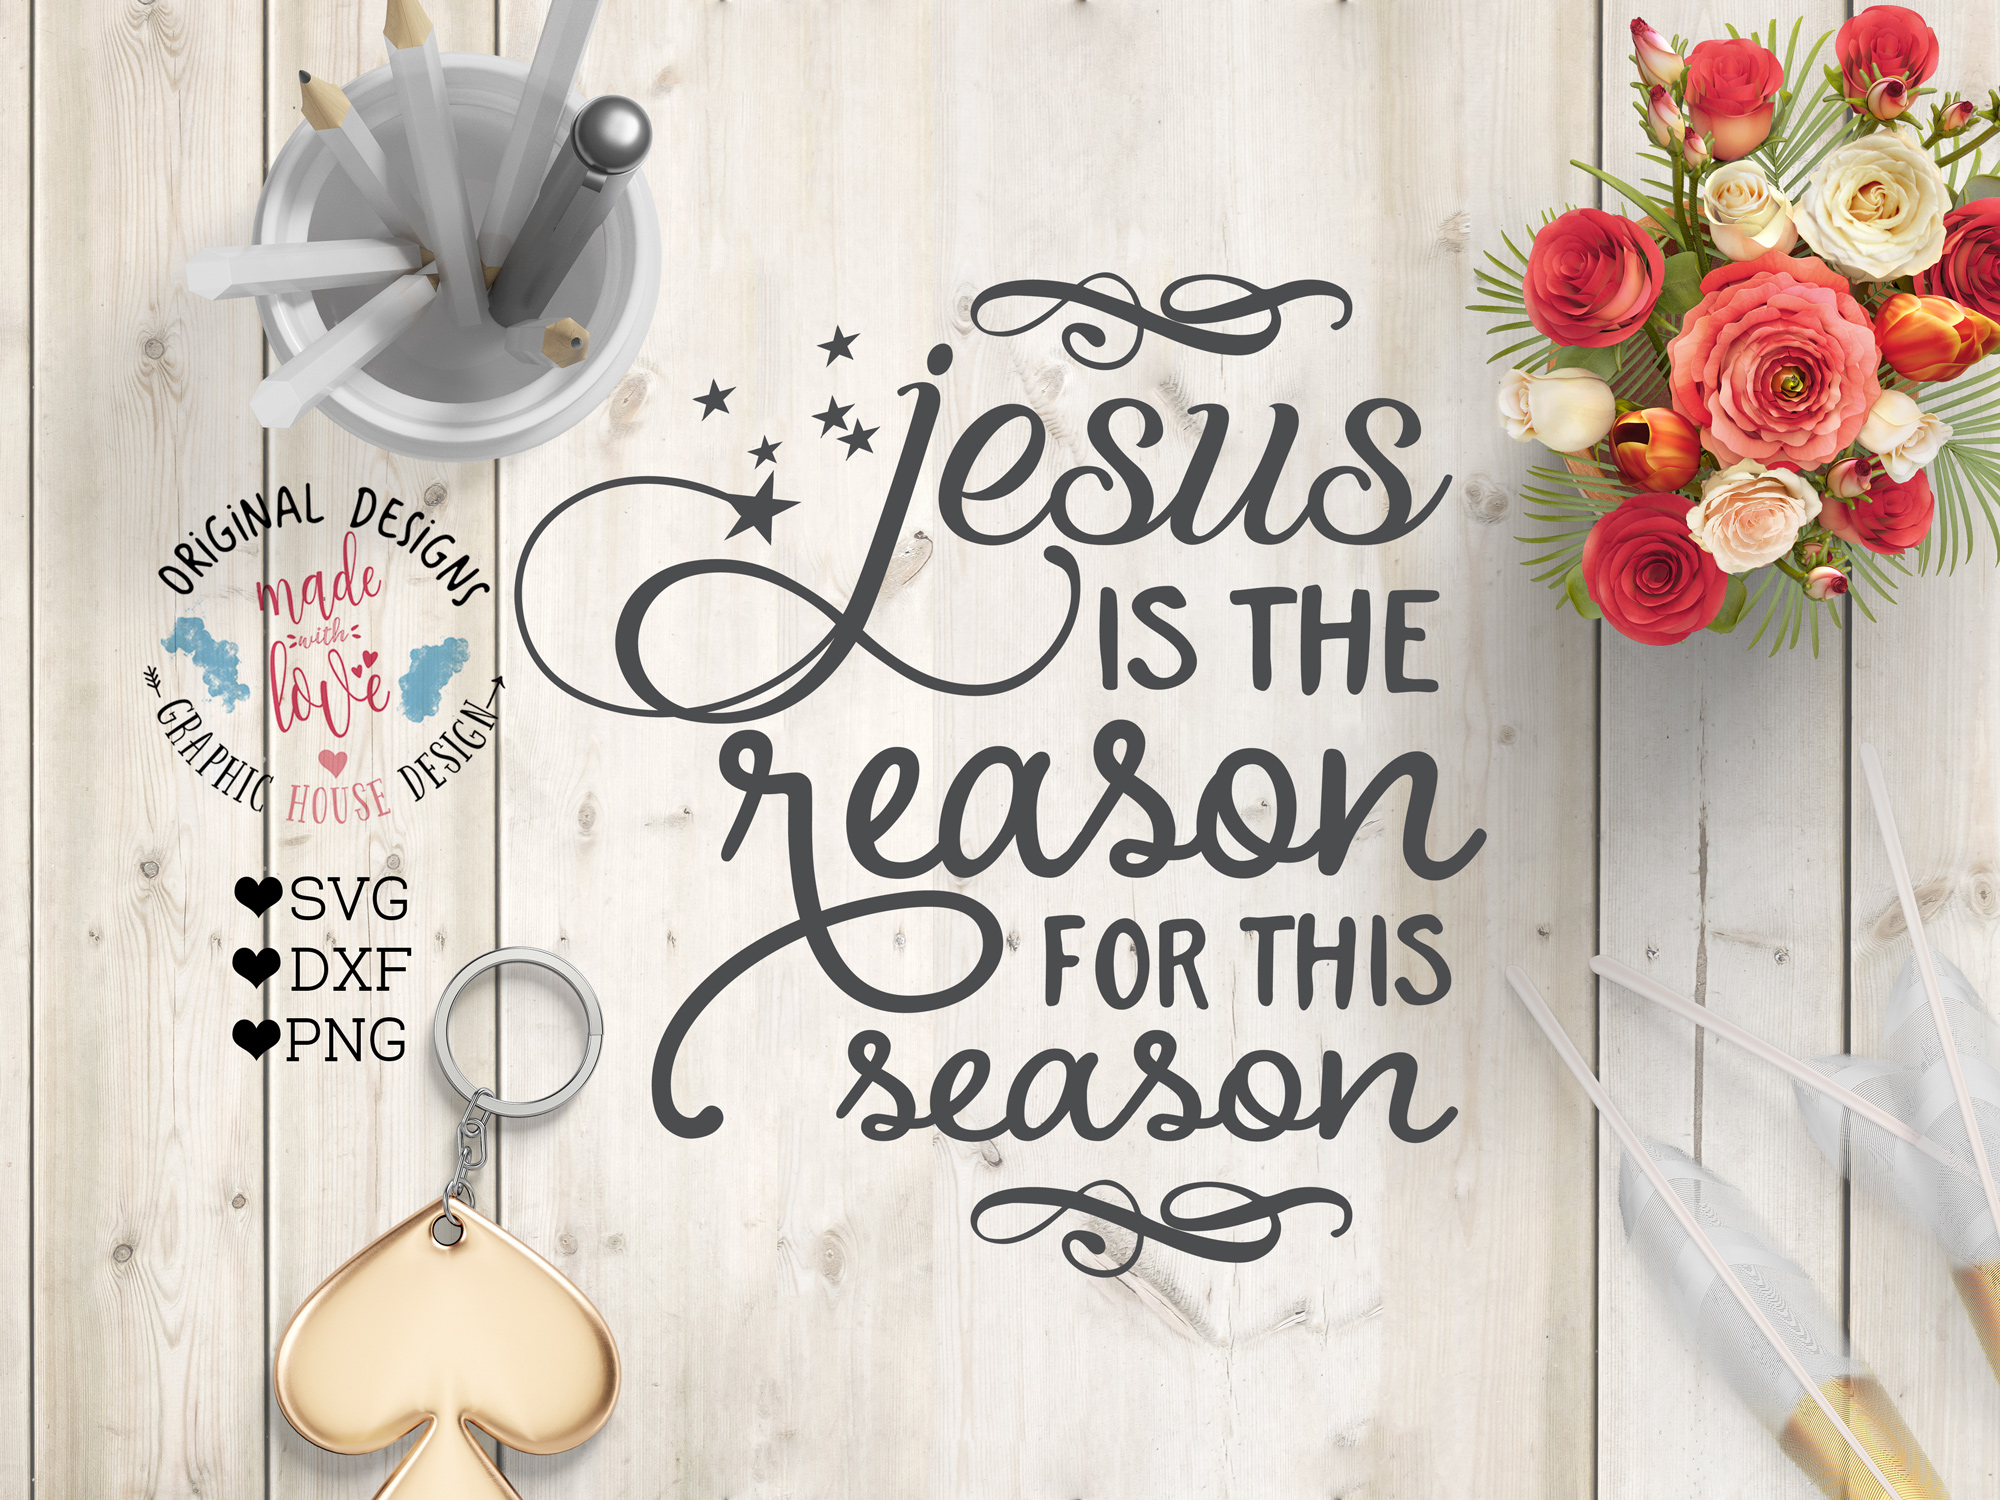 Jesus is the reason for this season Cutting File (SVG, DXF, PNG) example image 1